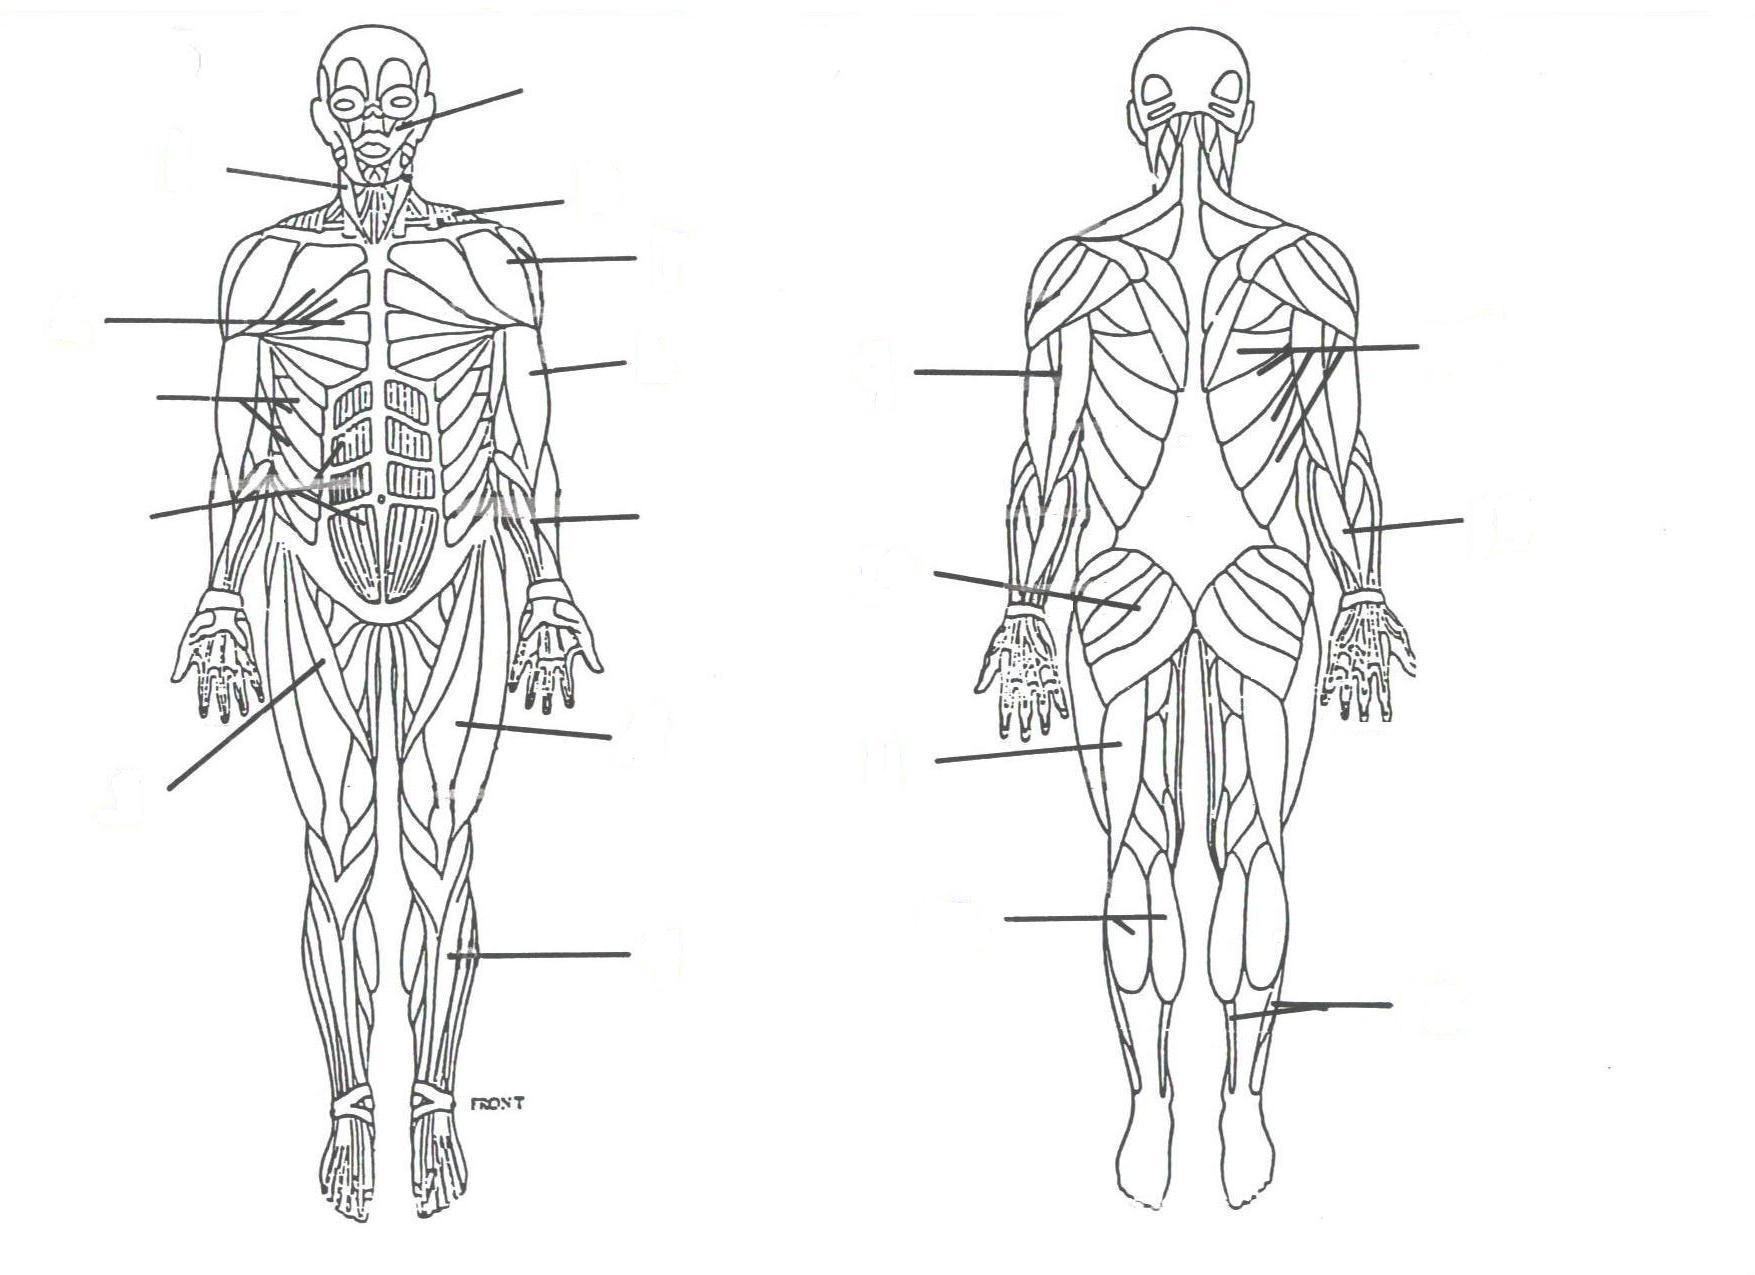 Muscular System Diagram Labeled For Kids